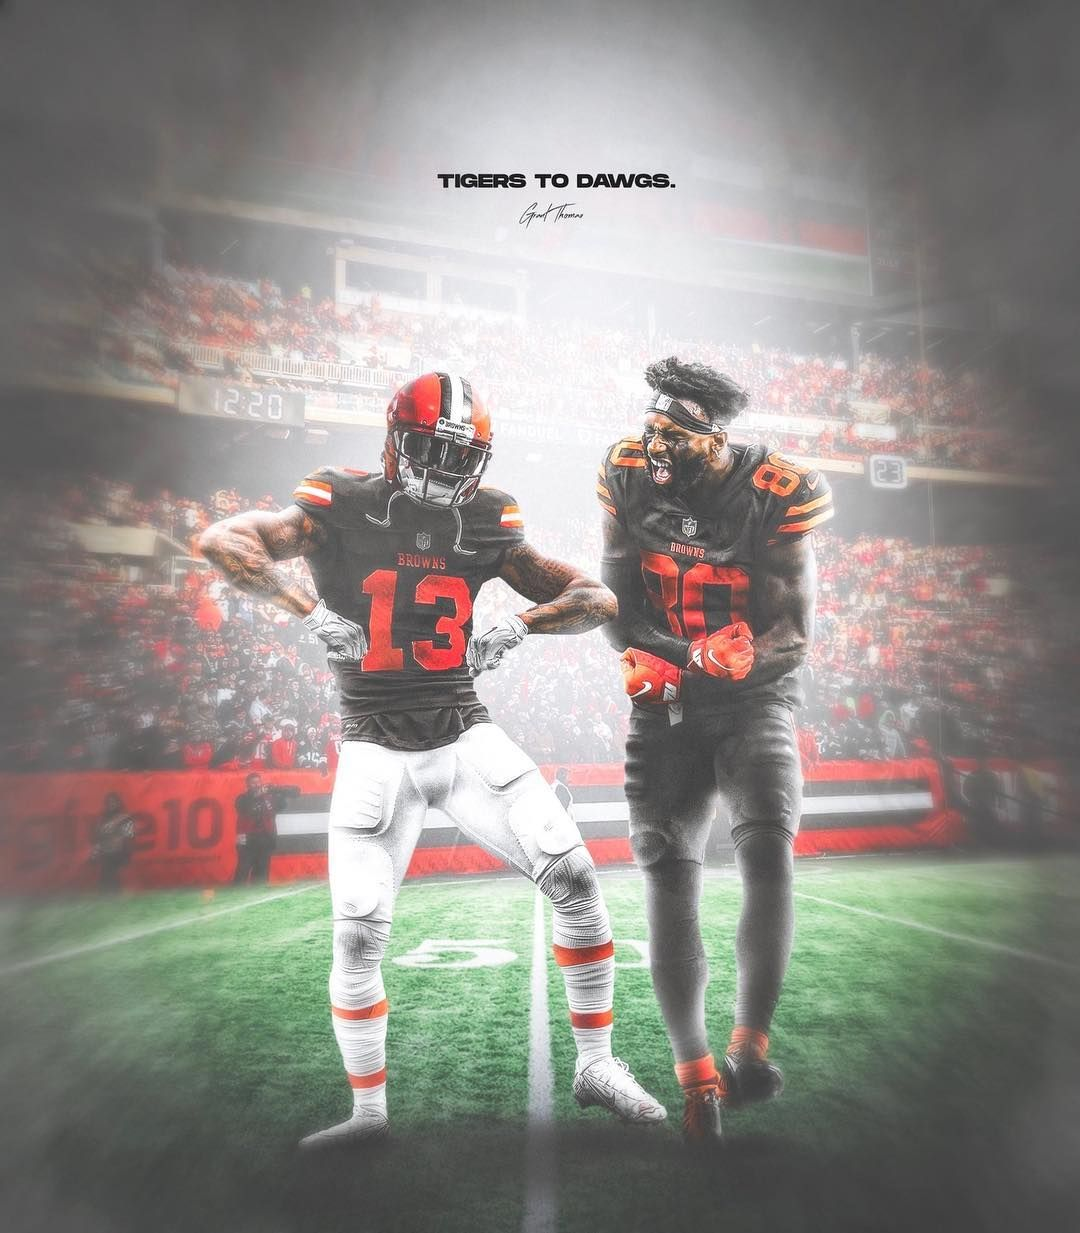 Grant Thomas On Instagram Tigers To Dawgs Odell Beckham